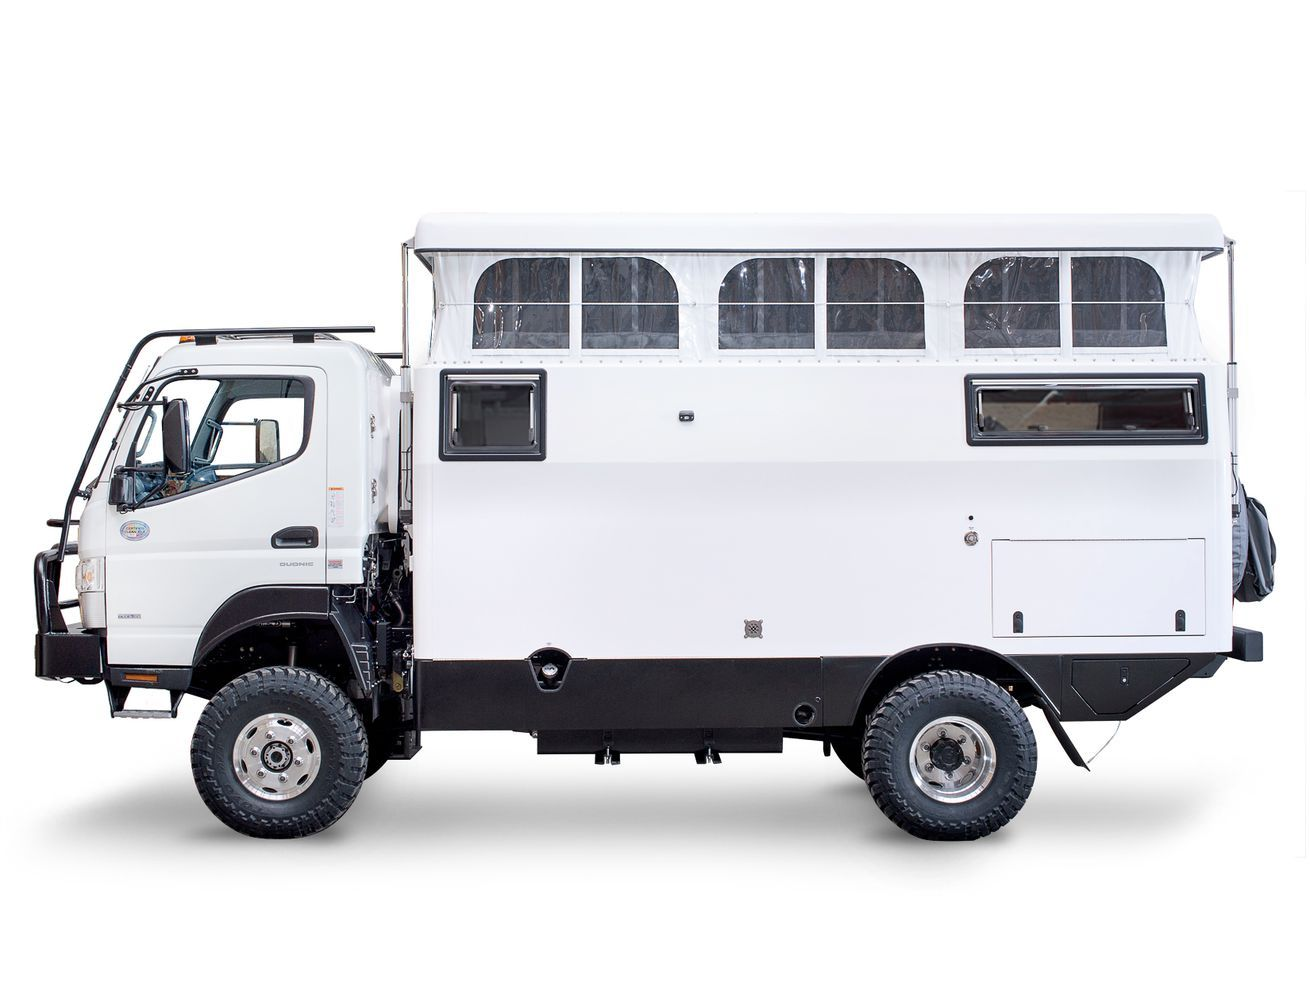 Off-road camper fits in a shipping container for overseas